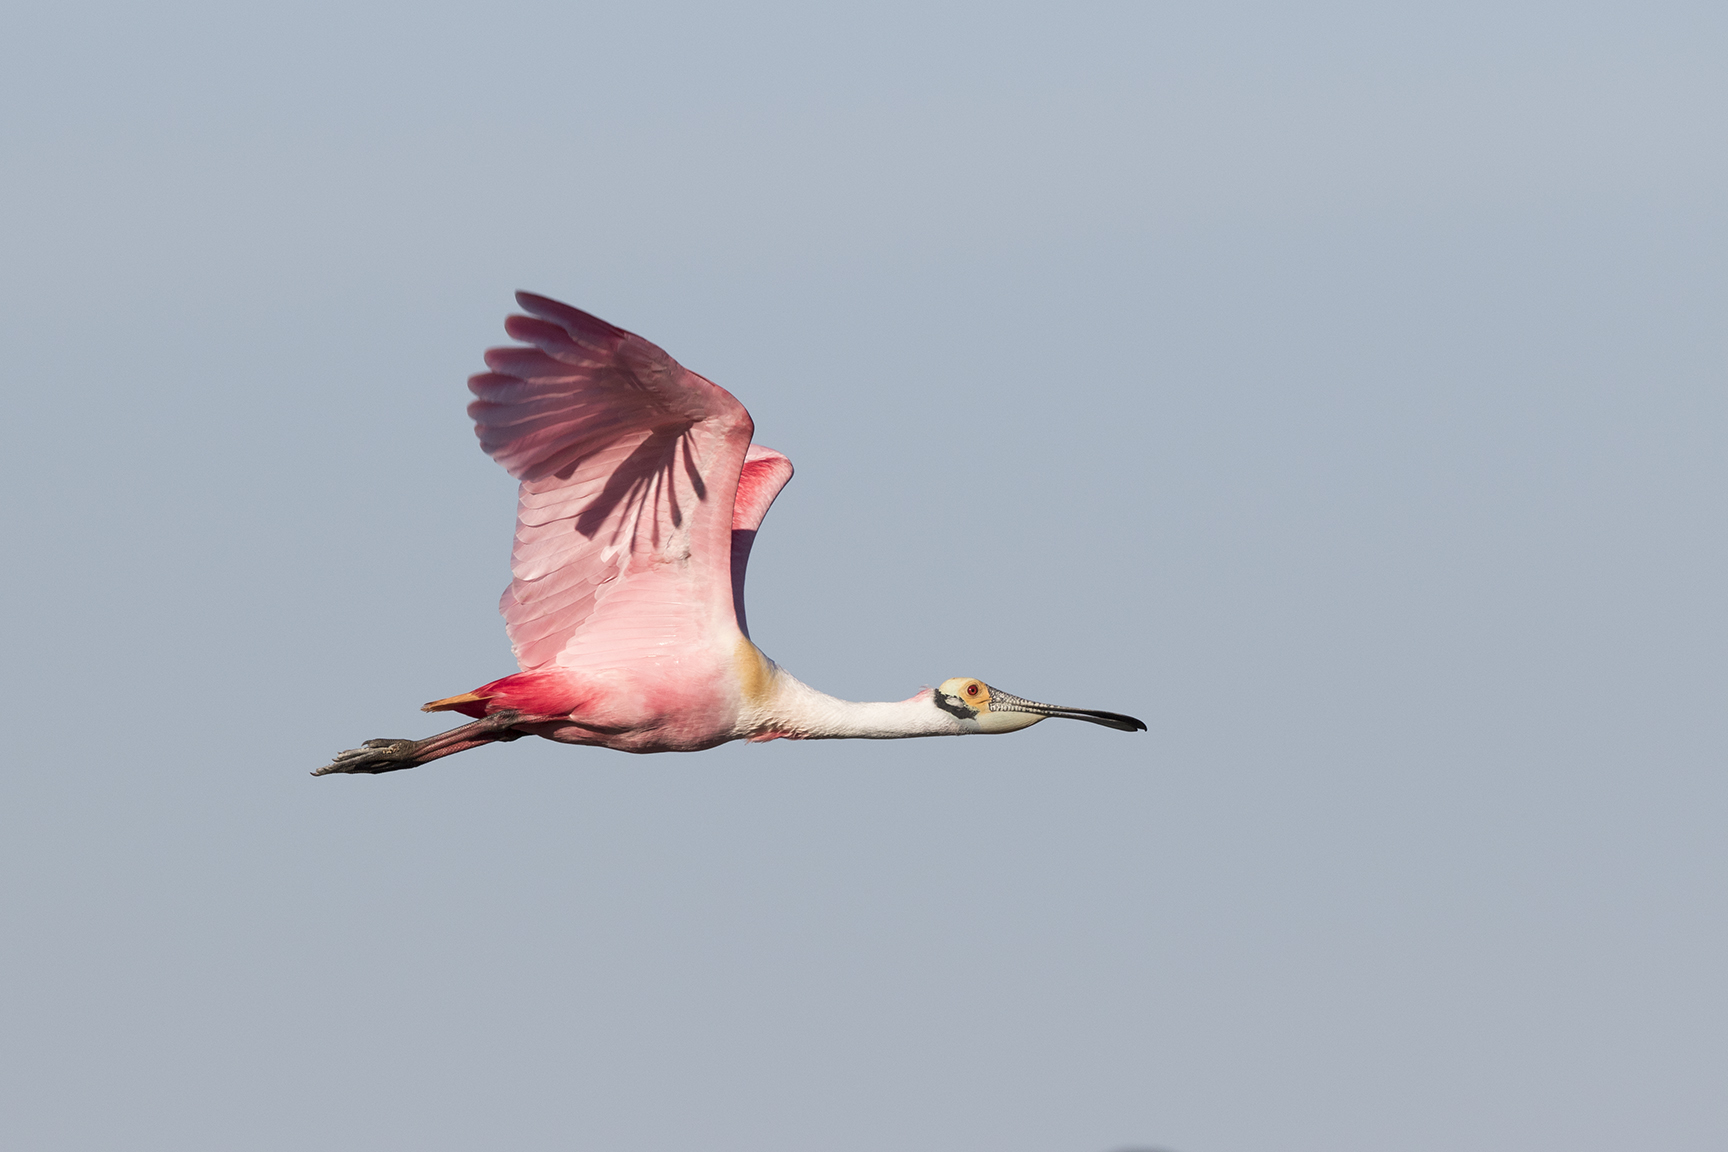 ROSEATE SPOONBILL - GALVESTON COUNTY TX MARCH, 2016